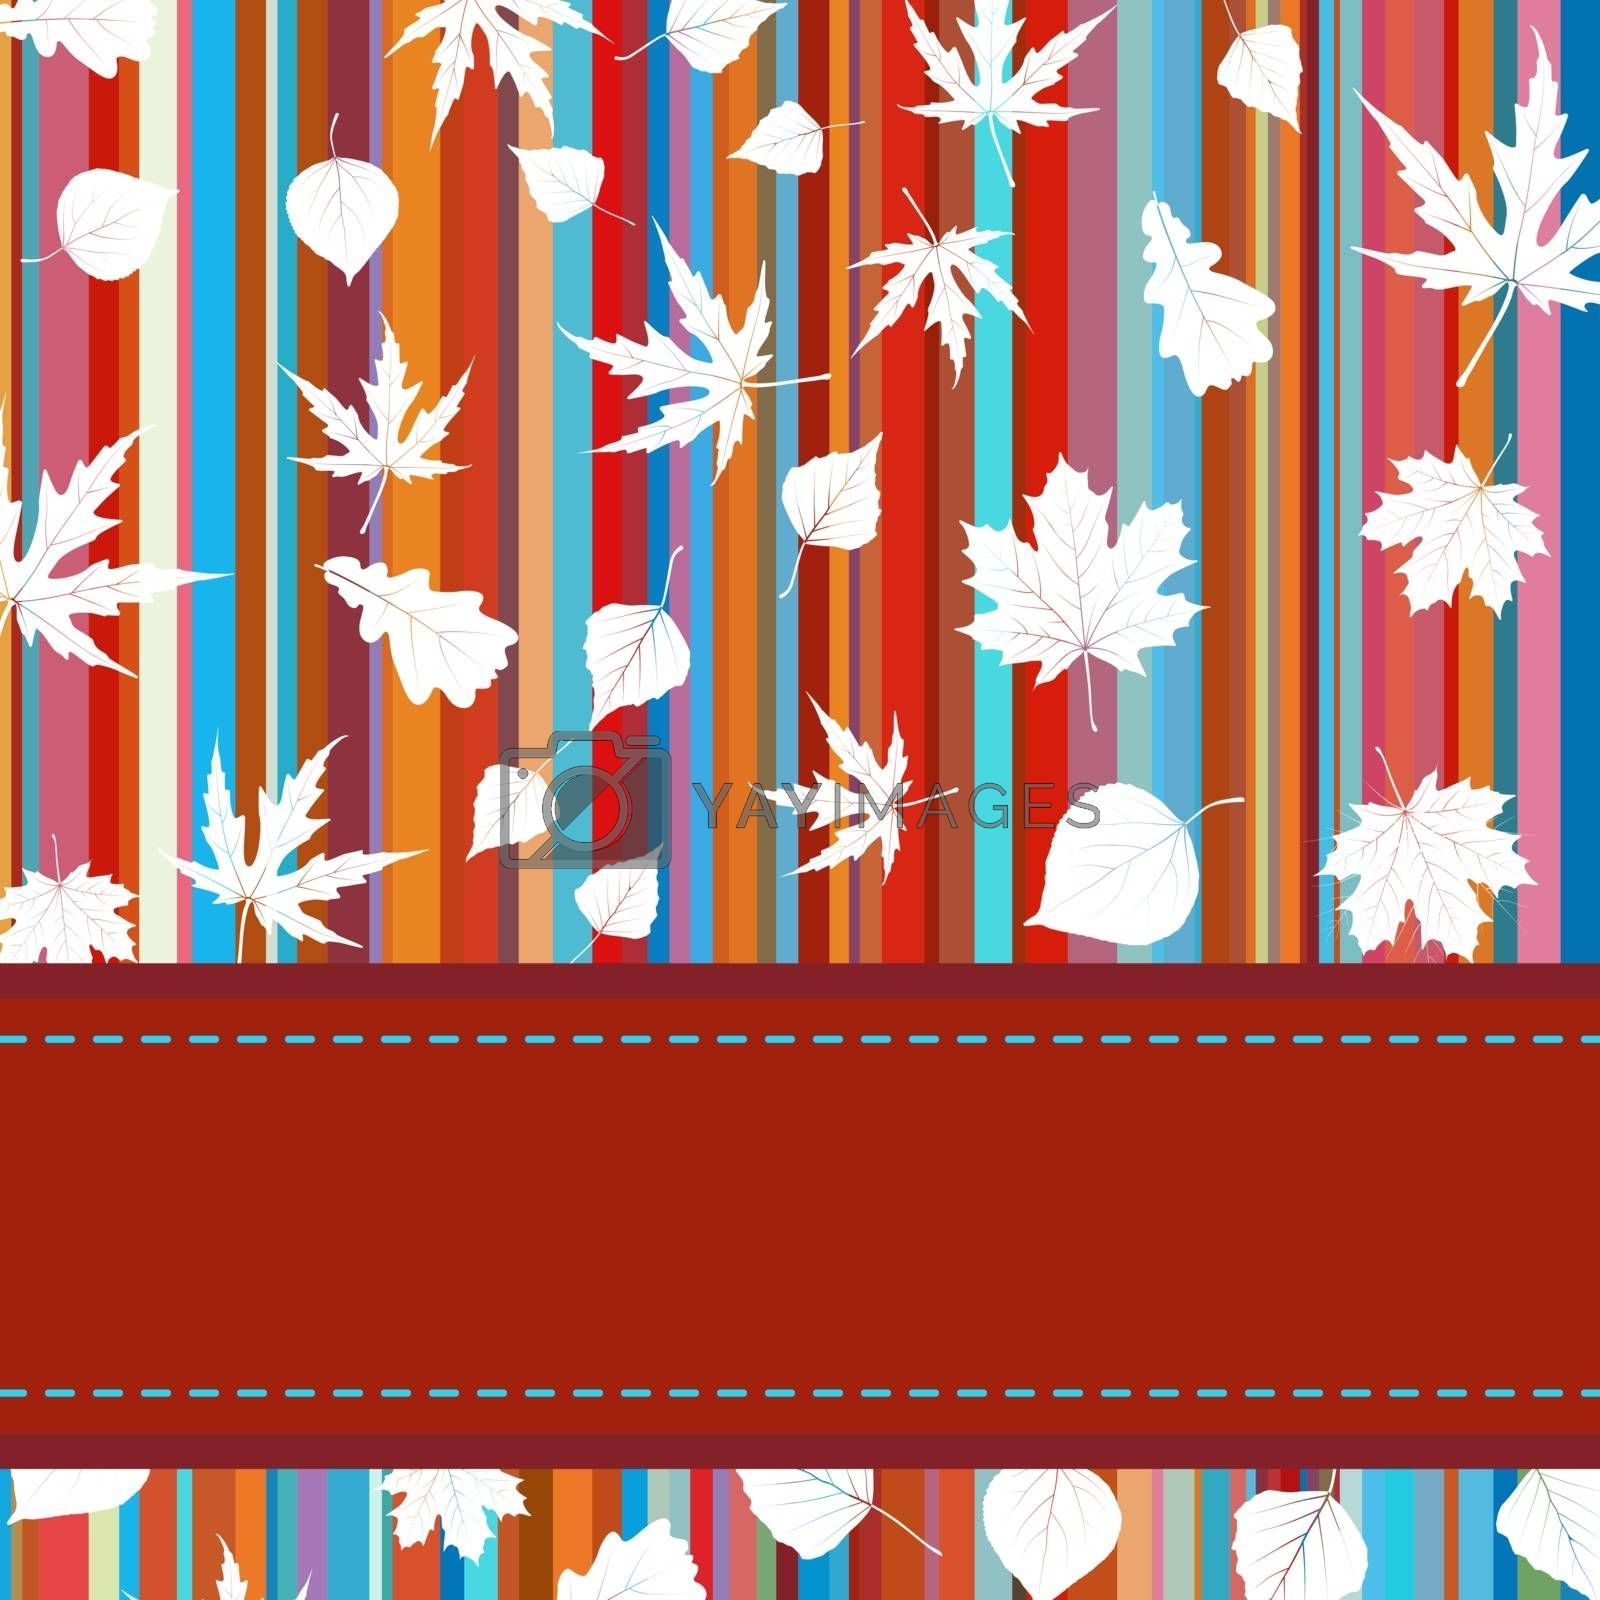 Colorful background with stripes & maple leaves. EPS 8 vector file included